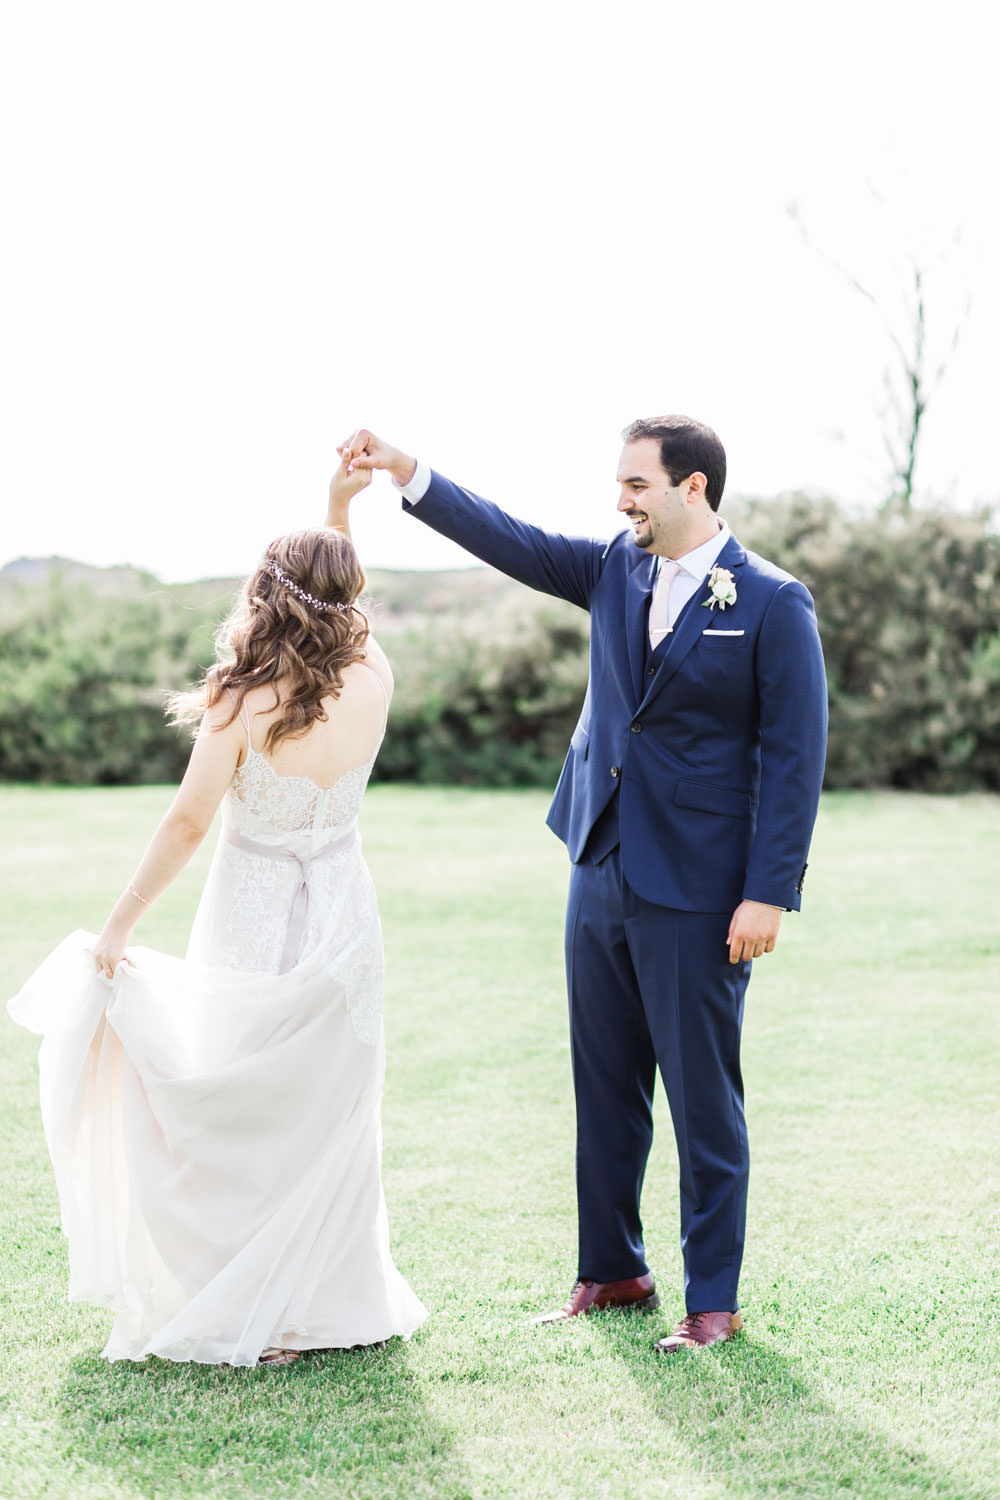 Wedding first look in a field between bride and groom at their Ethereal Open Air Resort Wedding, Cavin Elizabeth Photography